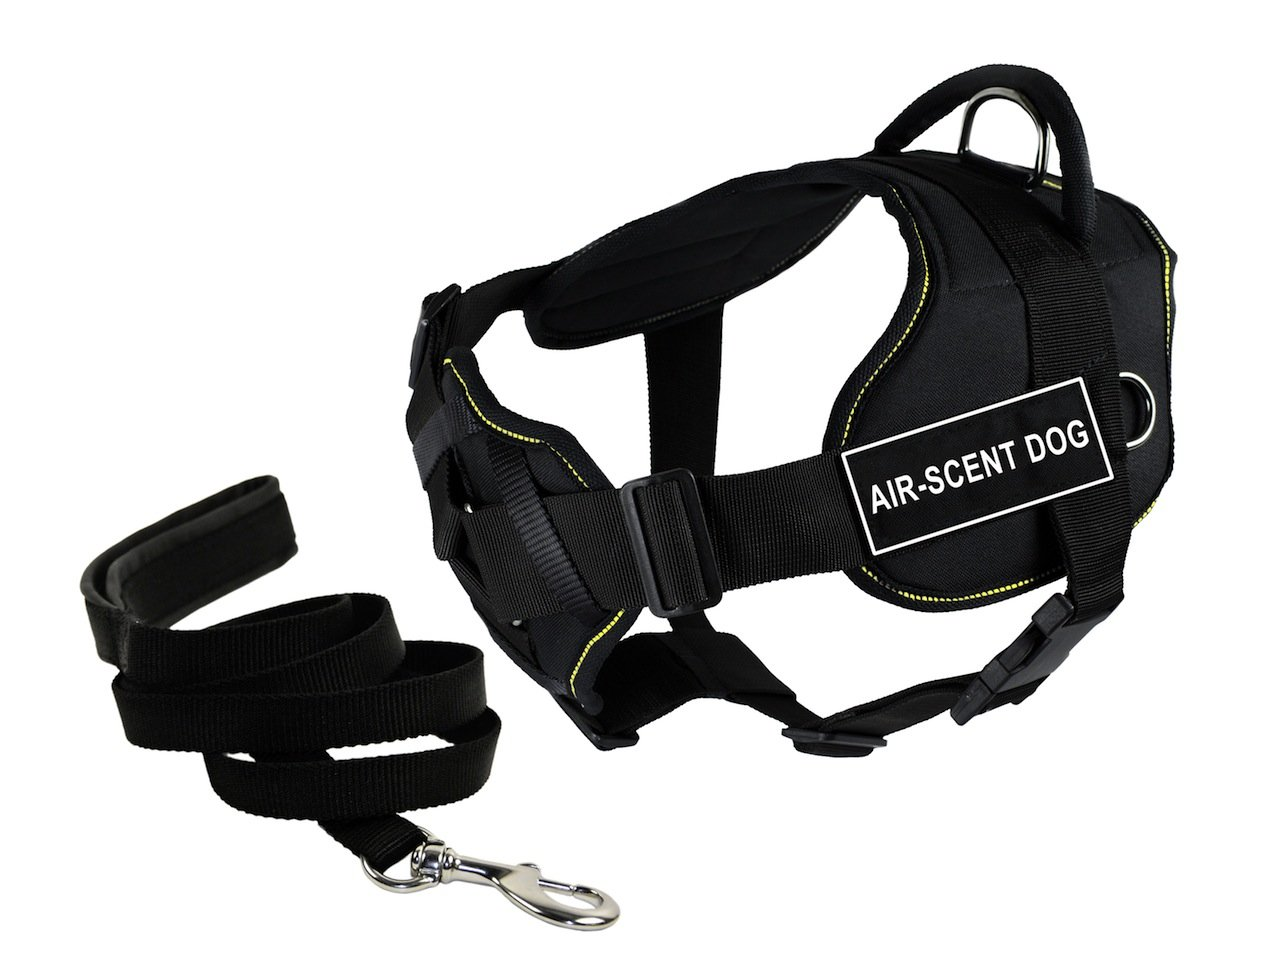 Dean & Tyler's DT Fun Chest Support AIR-Scent Dog  Harness, Small, with 6 ft Padded Puppy Leash.